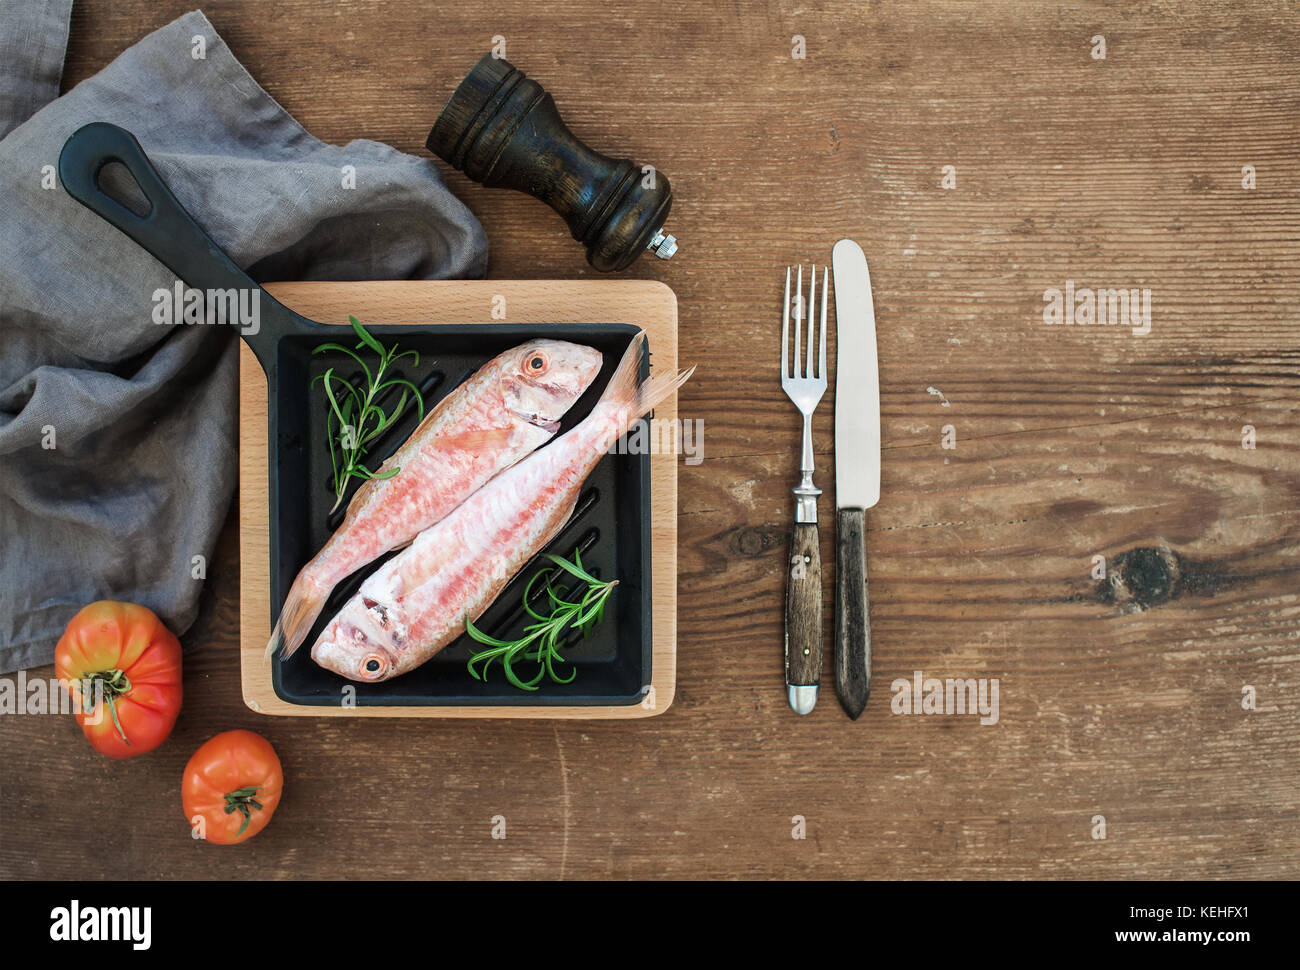 Raw uncooked Red Mullet fish in a cooking pan with rosemary, lemon and garlic over rustic wooden background, top - Stock Image